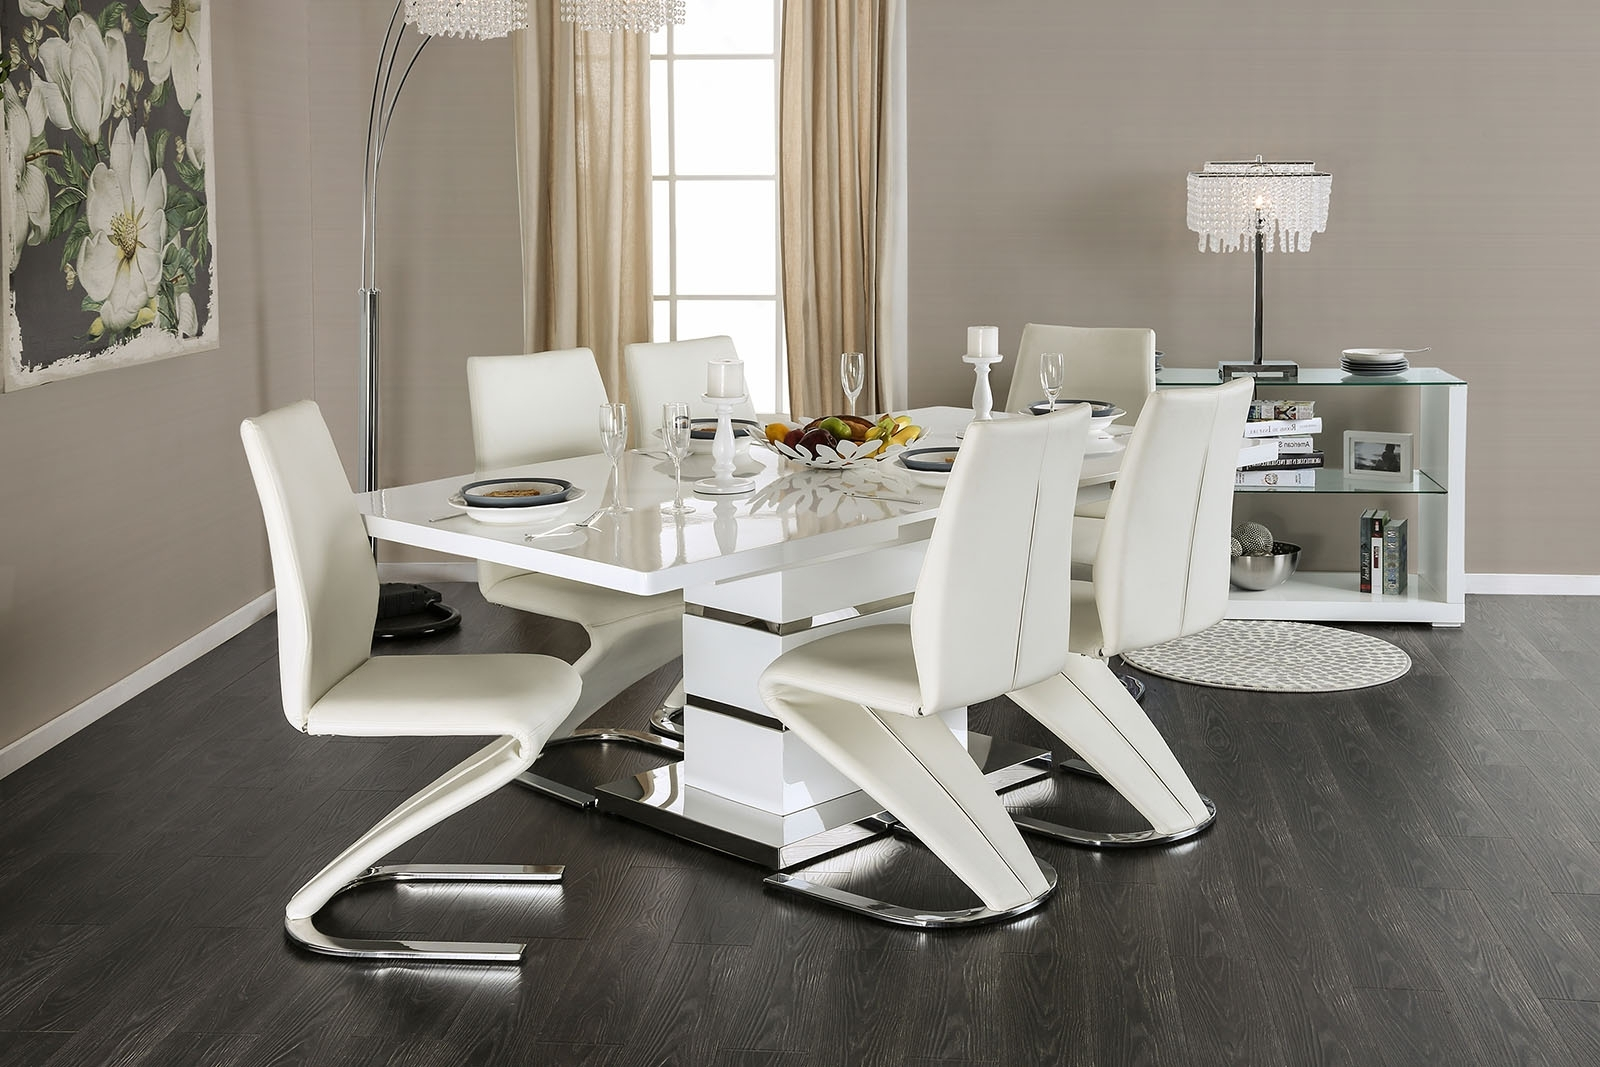 Fashionable Midvale Contemporary Style White High Gloss Lacquer Finish & Chrome Regarding Gloss Dining Set (View 24 of 25)